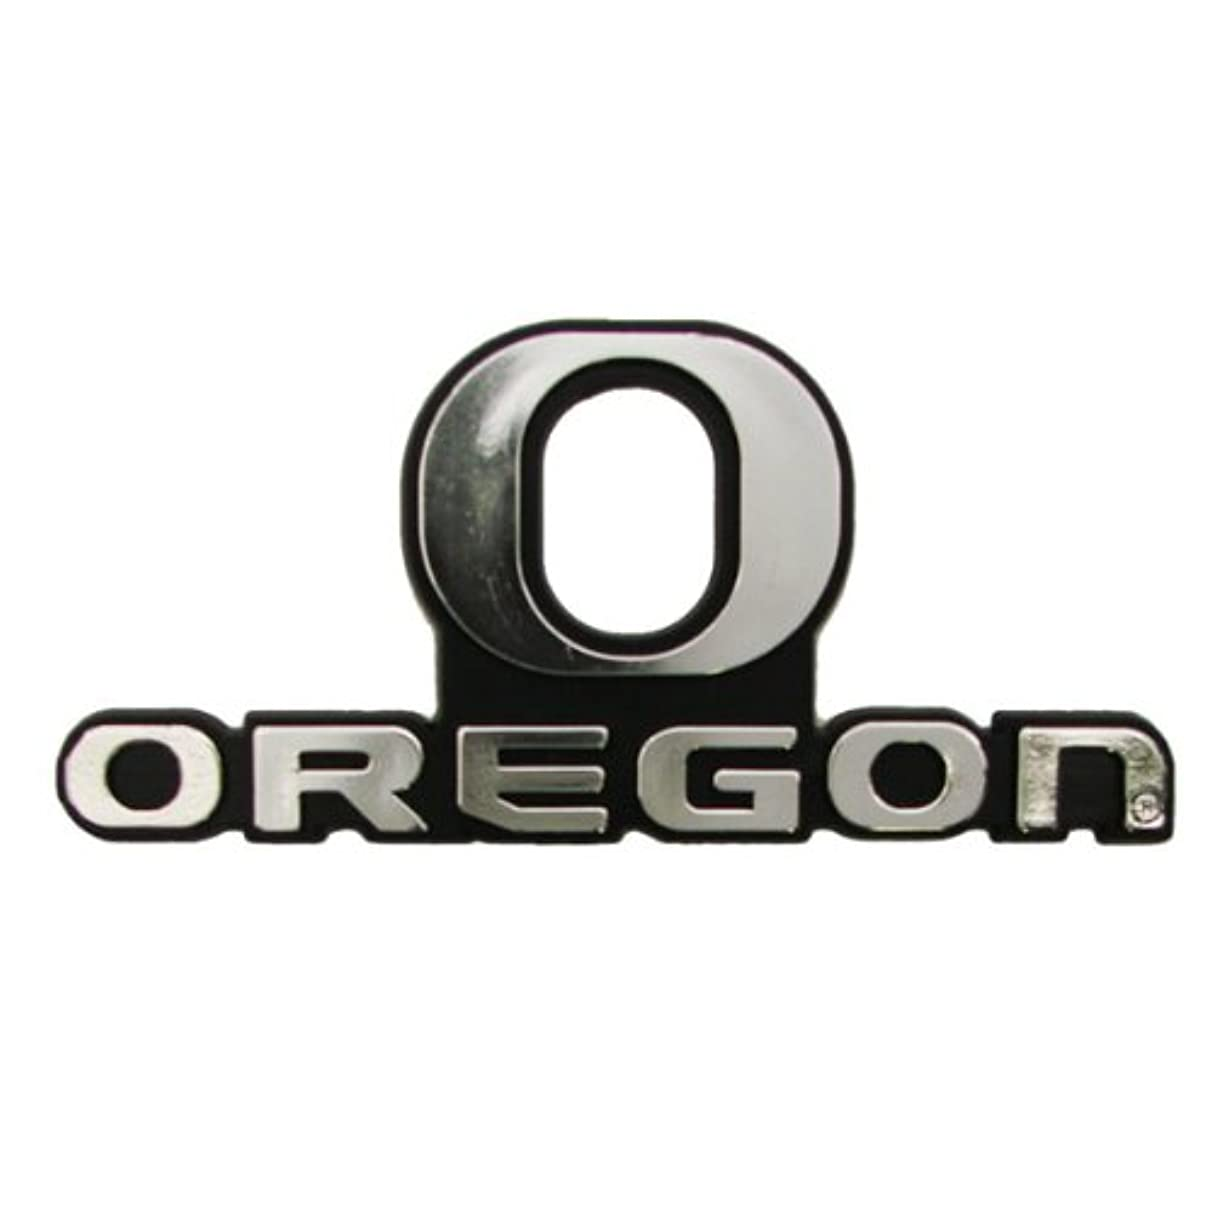 Oregon Ducks Silver Auto Emblem